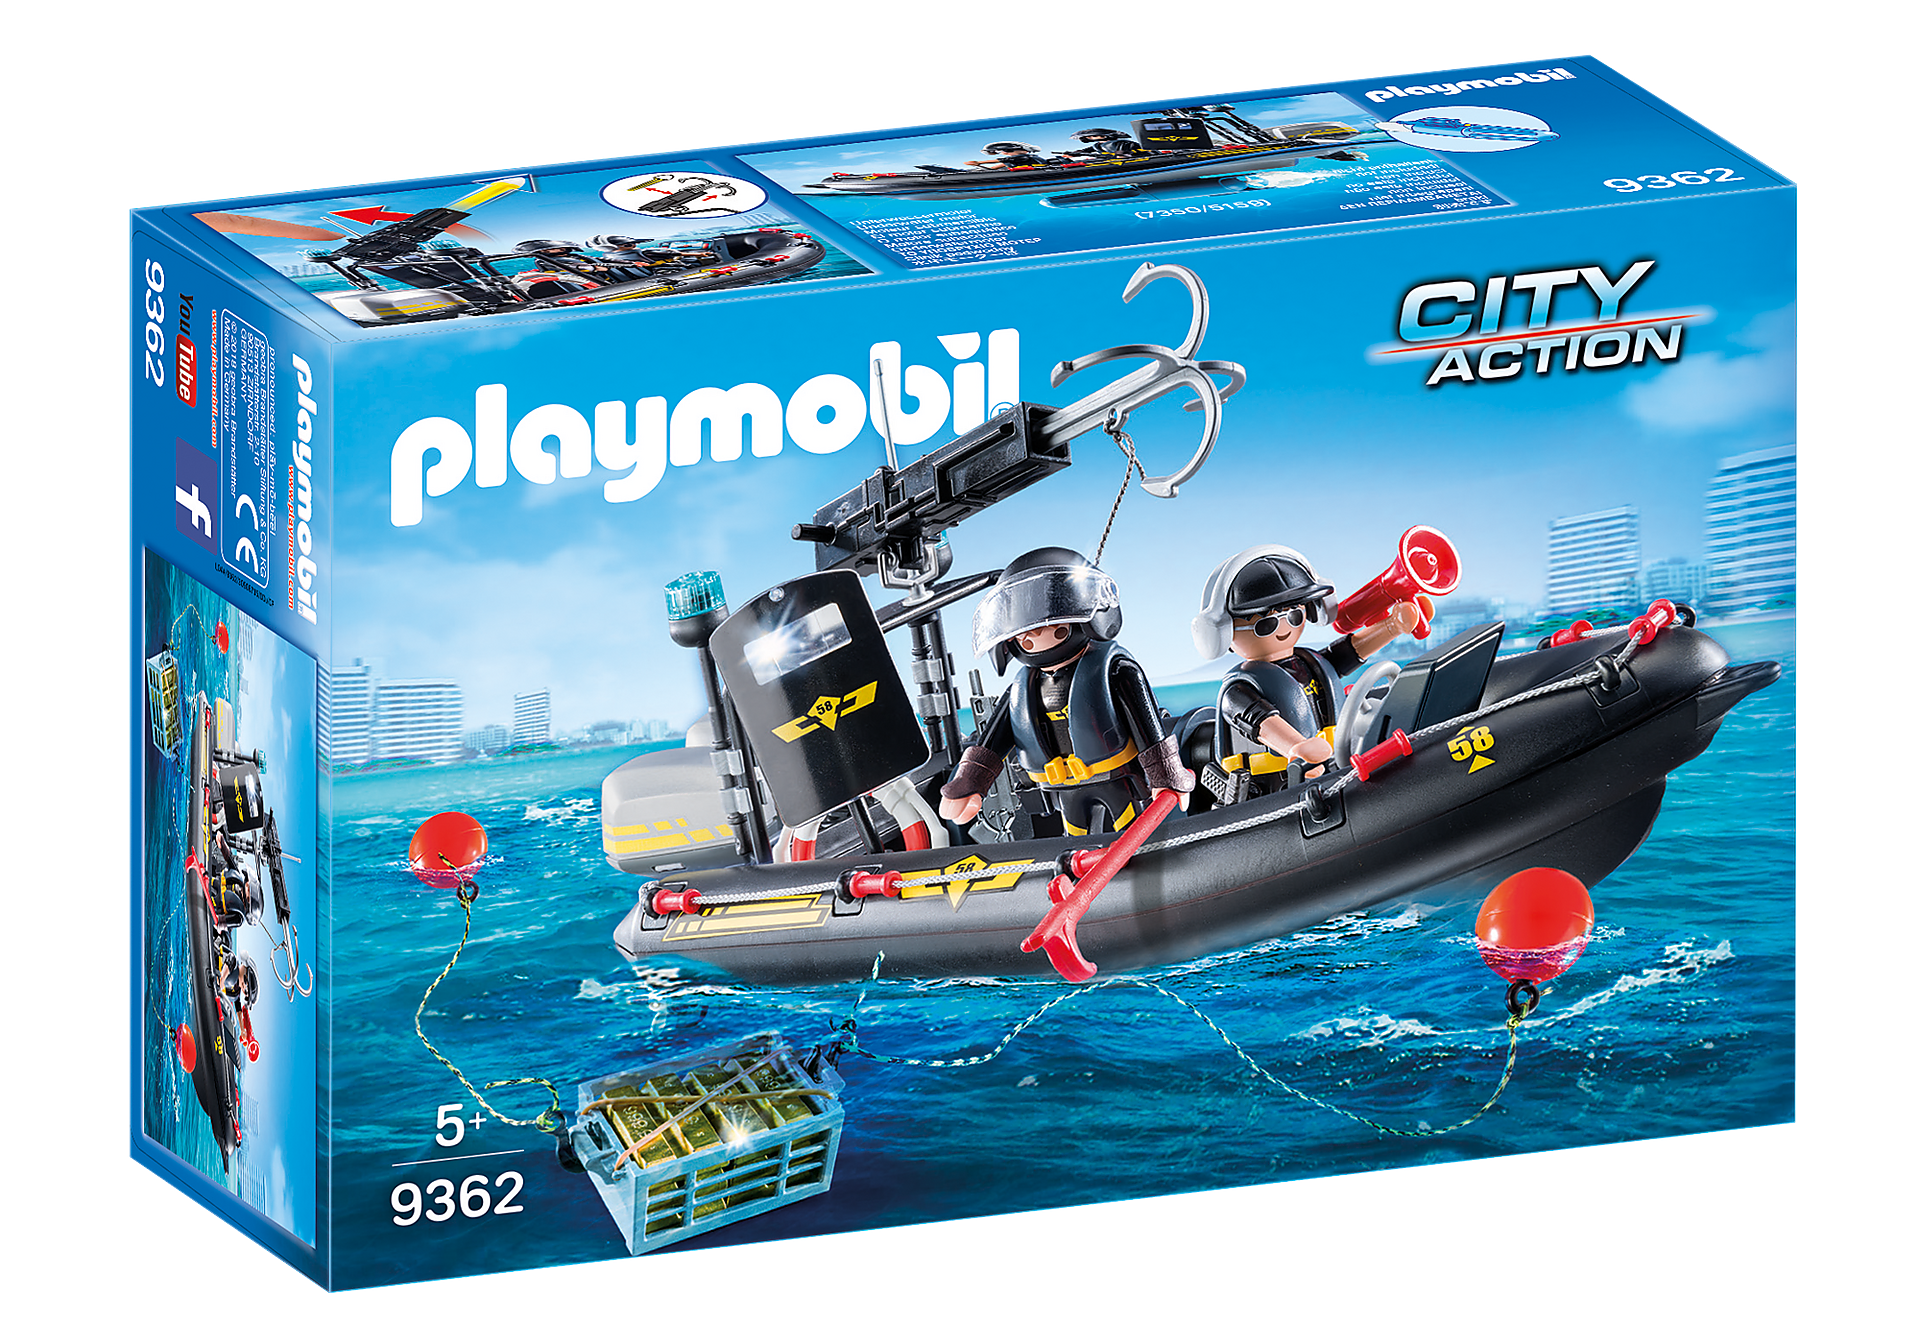 http://media.playmobil.com/i/playmobil/9362_product_box_front/Gommone Unità Speciale con refurtiva